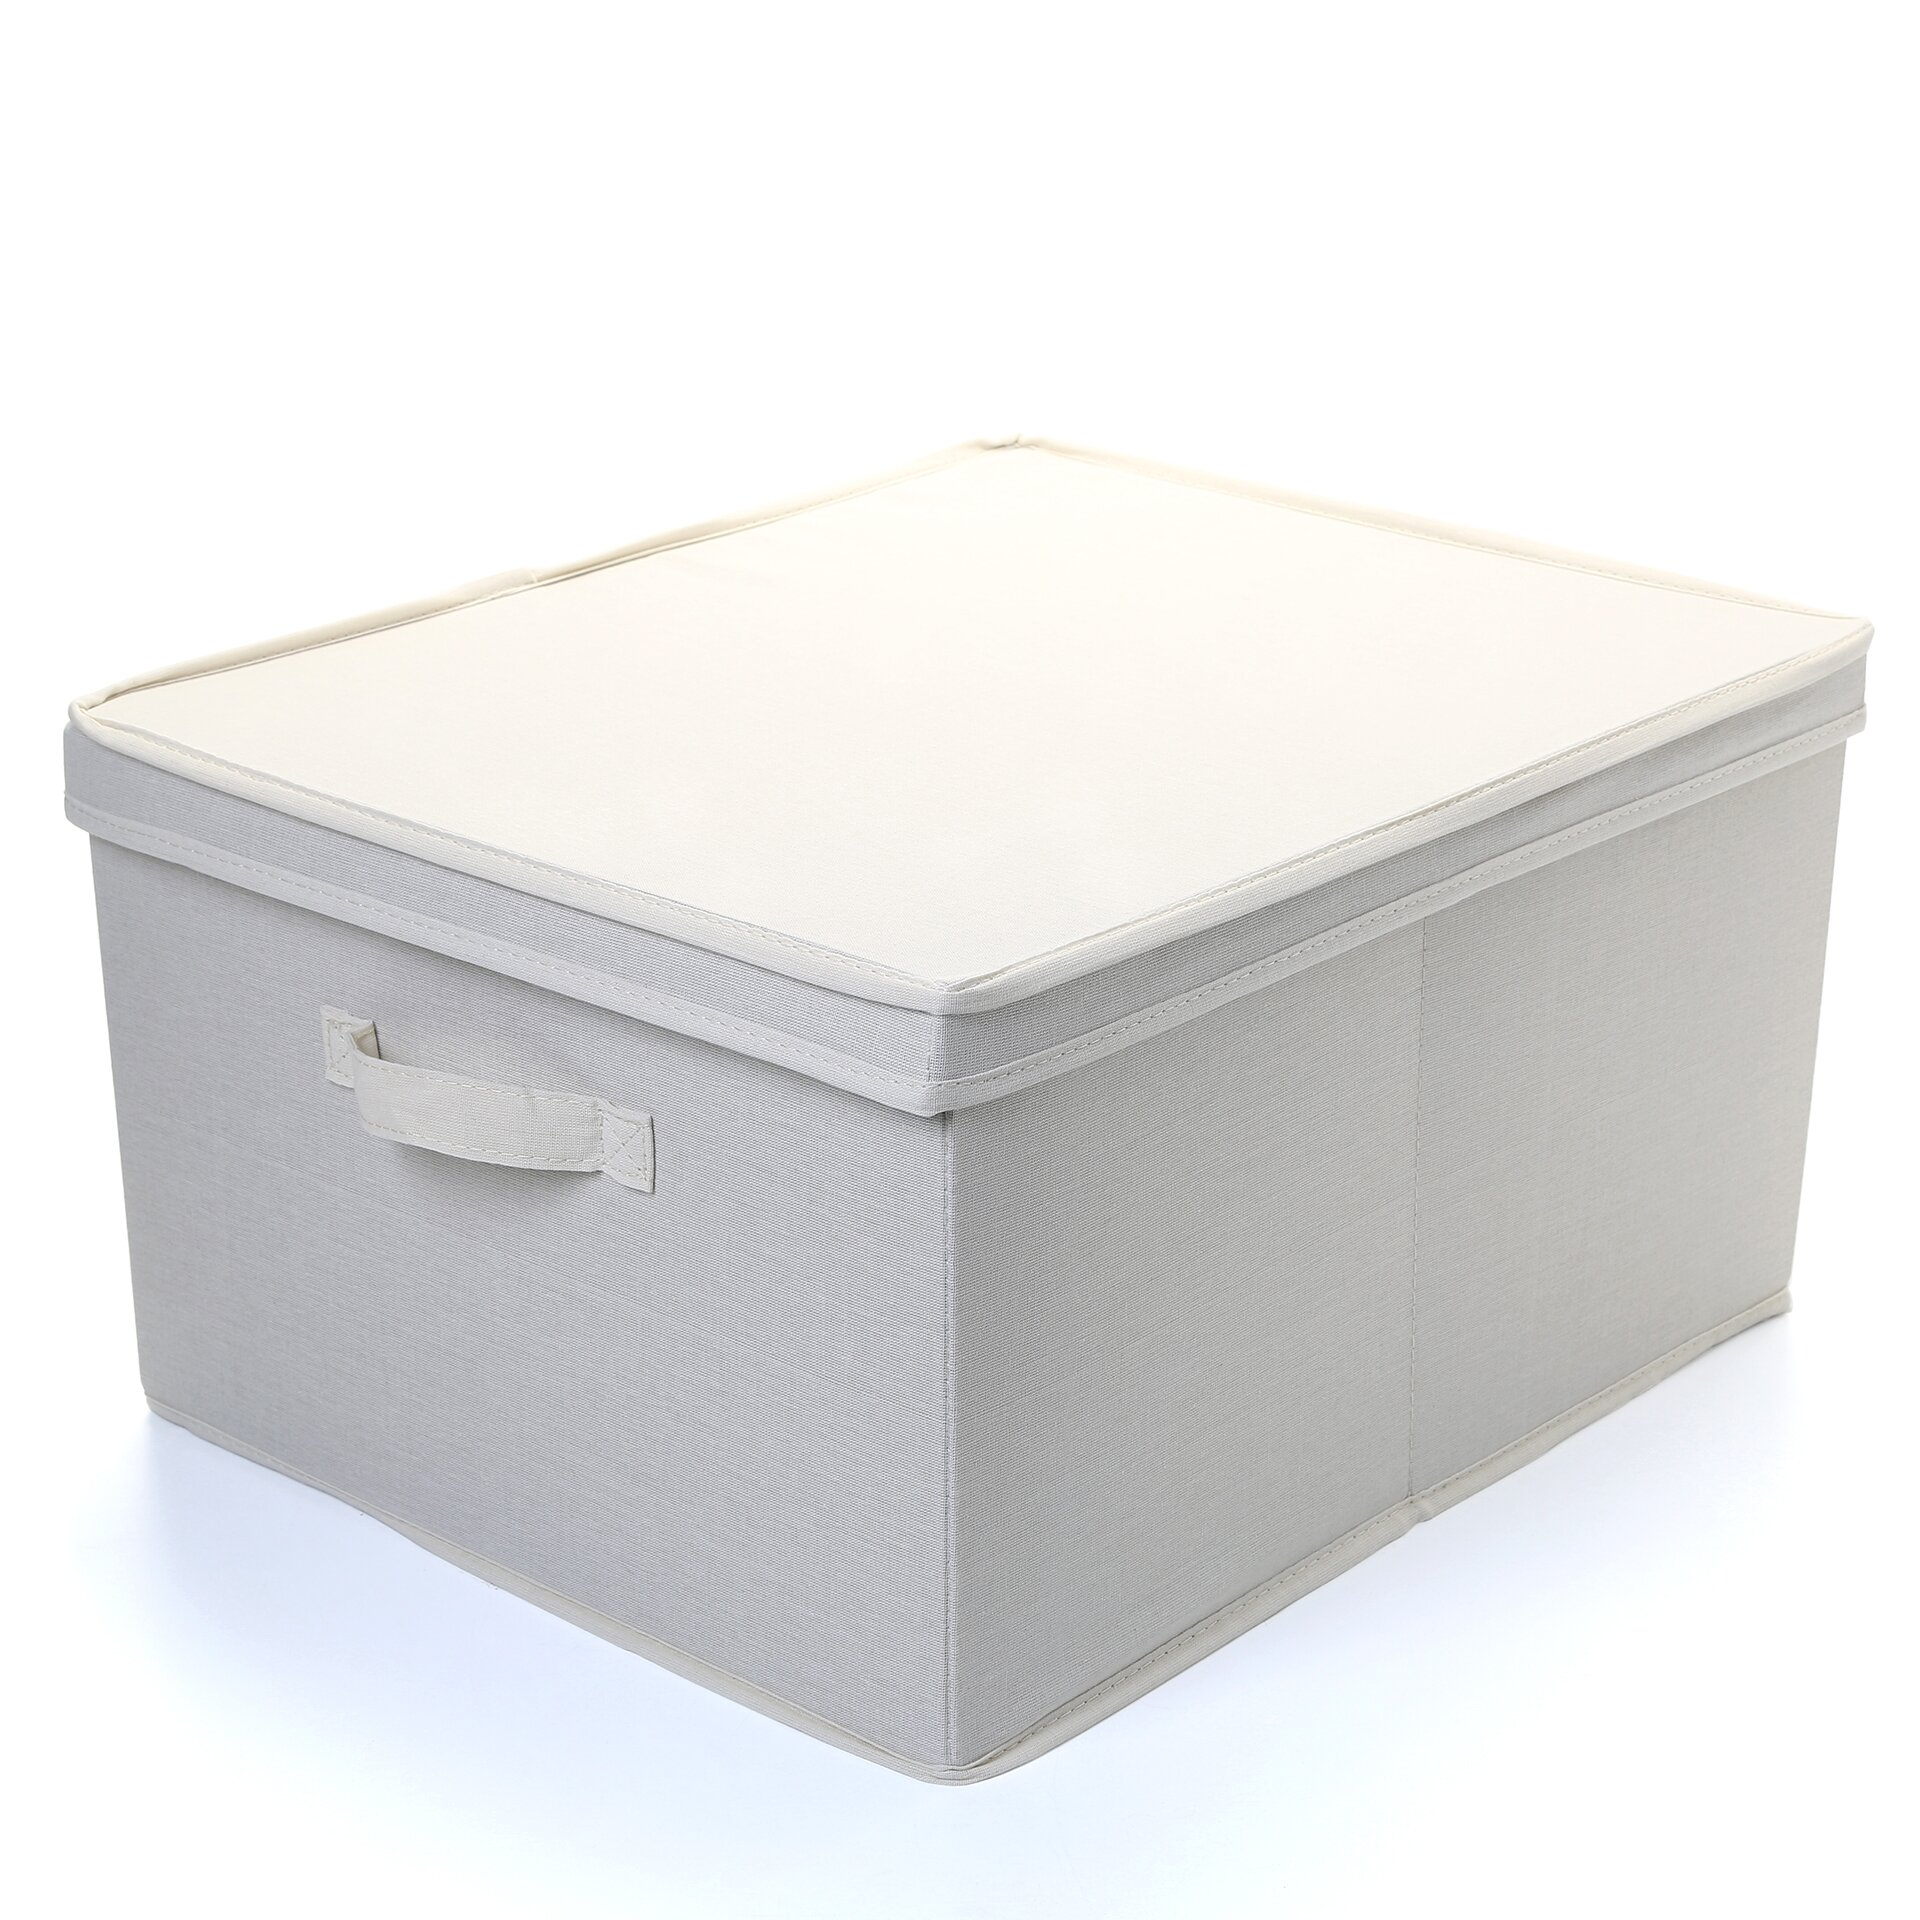 Charming ... Image Result For Organizing Essentials Decorative Storage Boxes ...